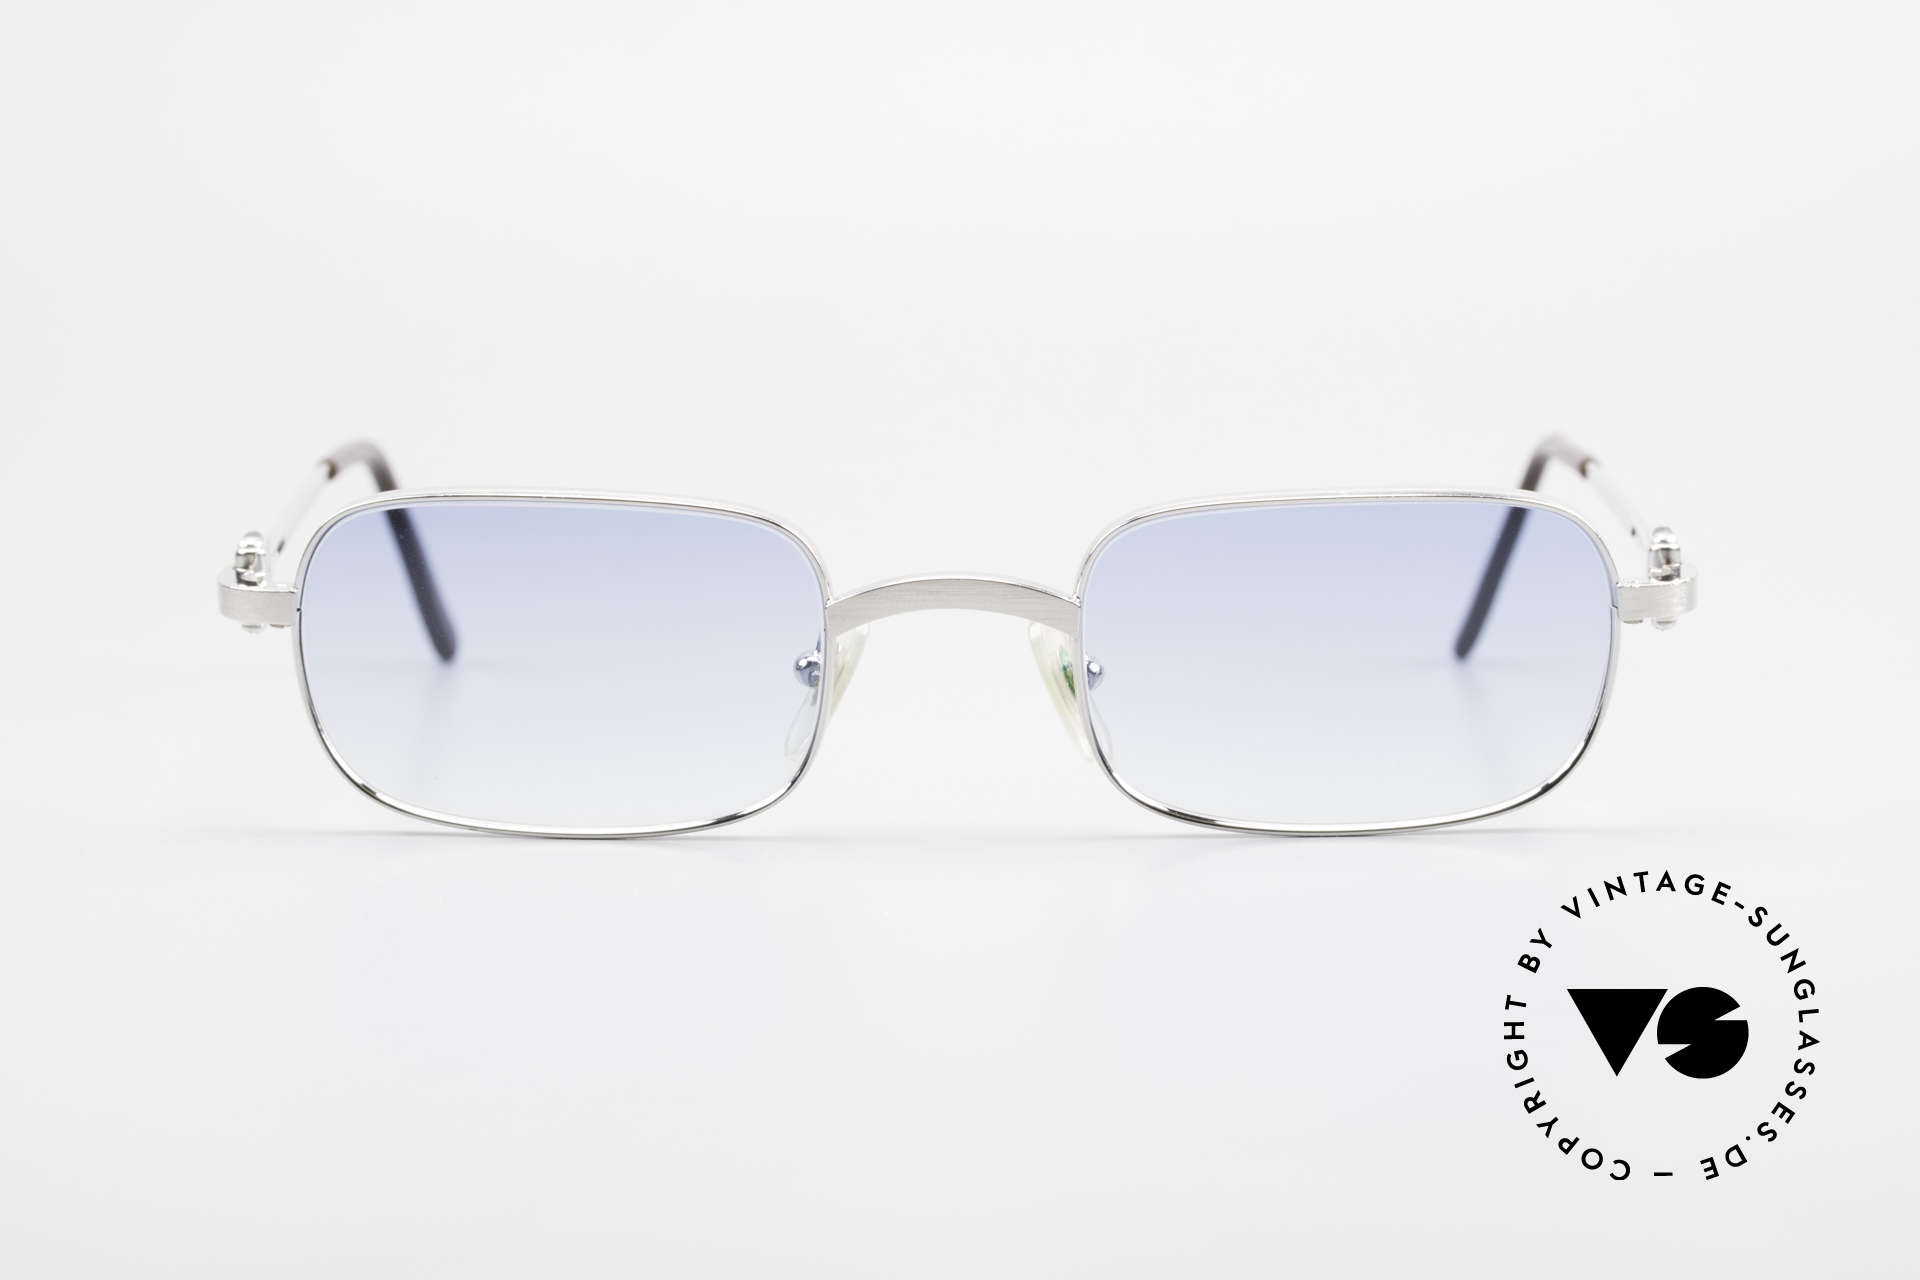 Cartier Dreamer Luxury Frame With Chanel Case, precious and timeless design, in medium size 50°23, Made for Men